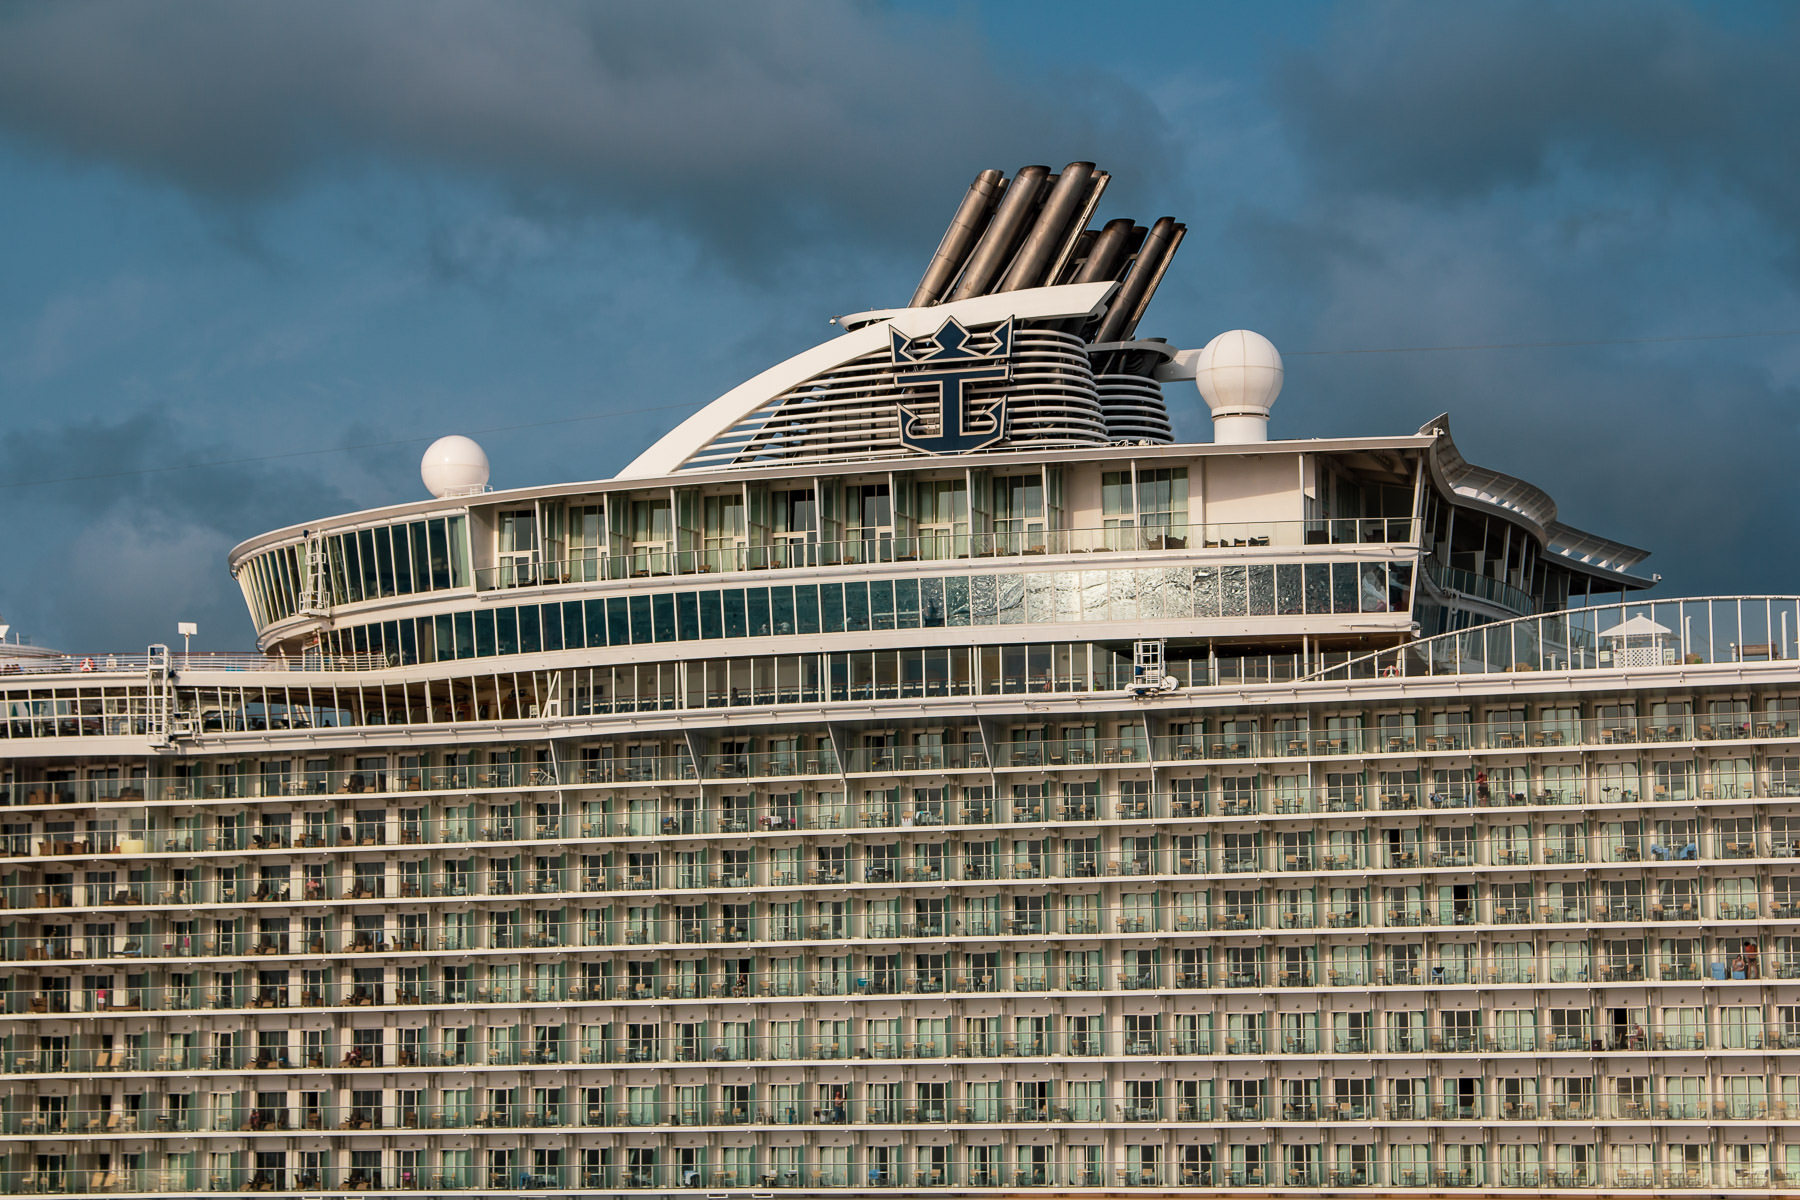 Detail of the cruise shipAllure of the Seas, spotted while docked in Cozumel, Mexico.